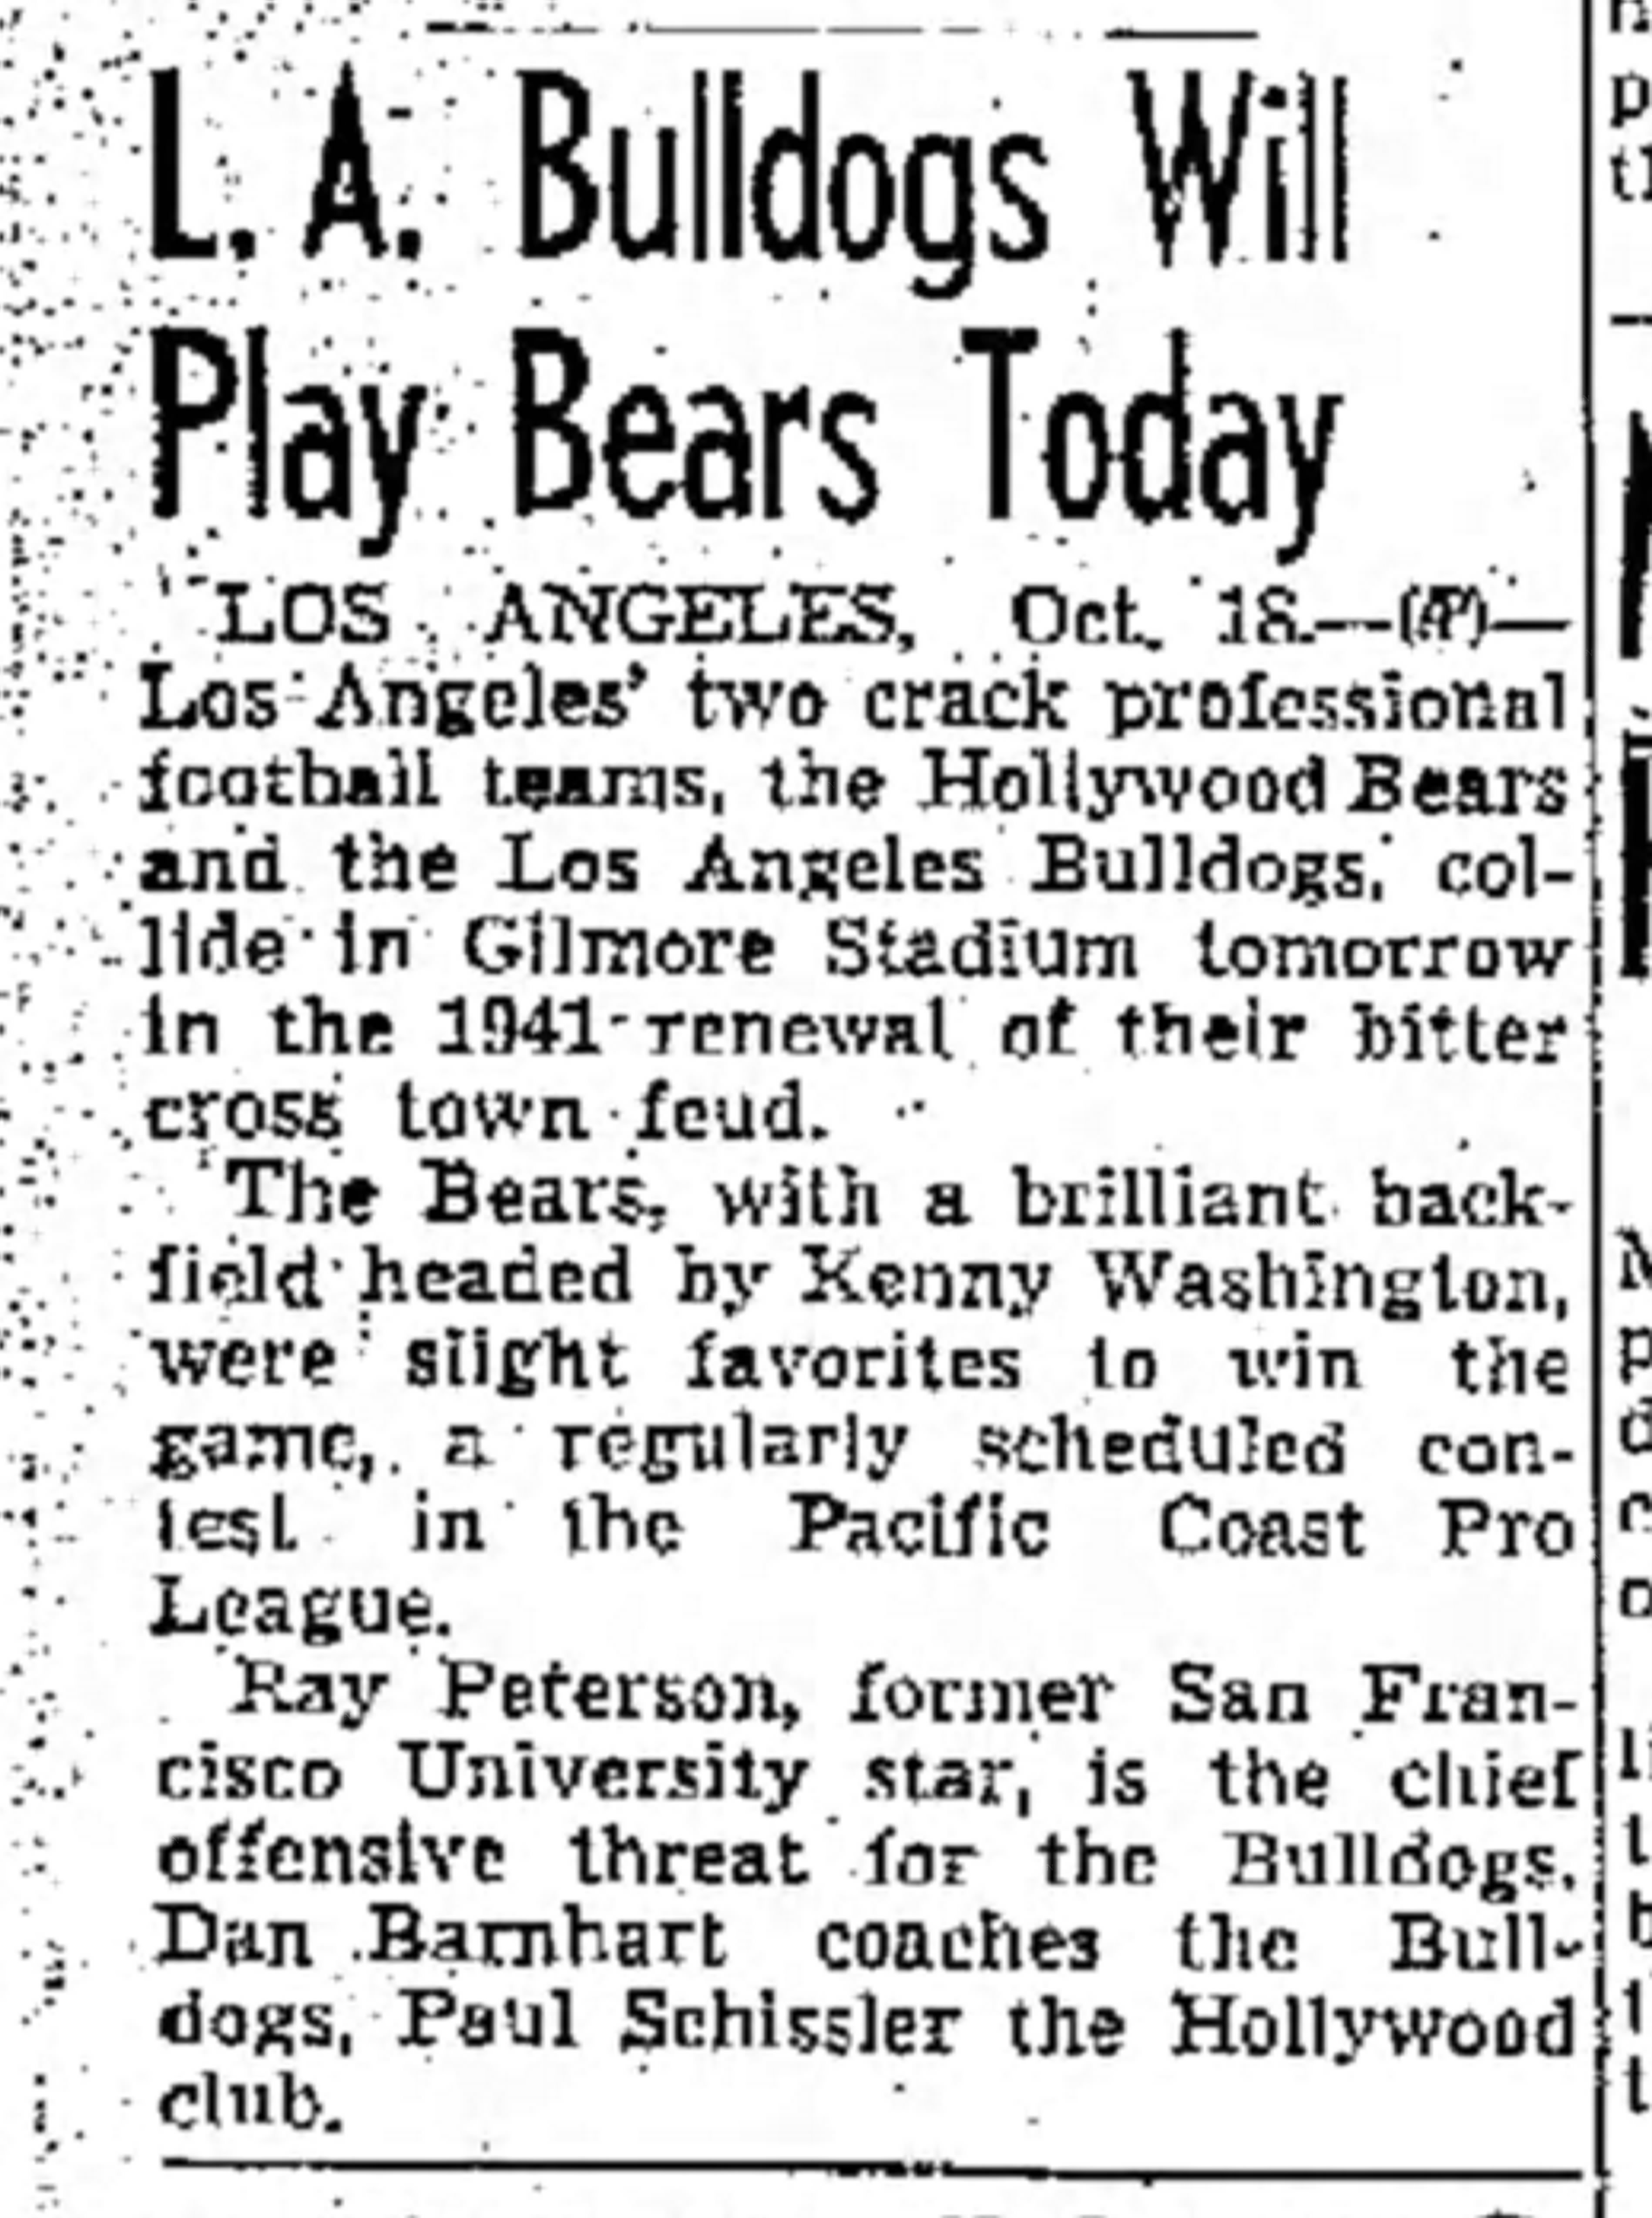 1941 Fresno Bee article announcing a Los Angeles Bulldogs vs Hollywood Bears game.